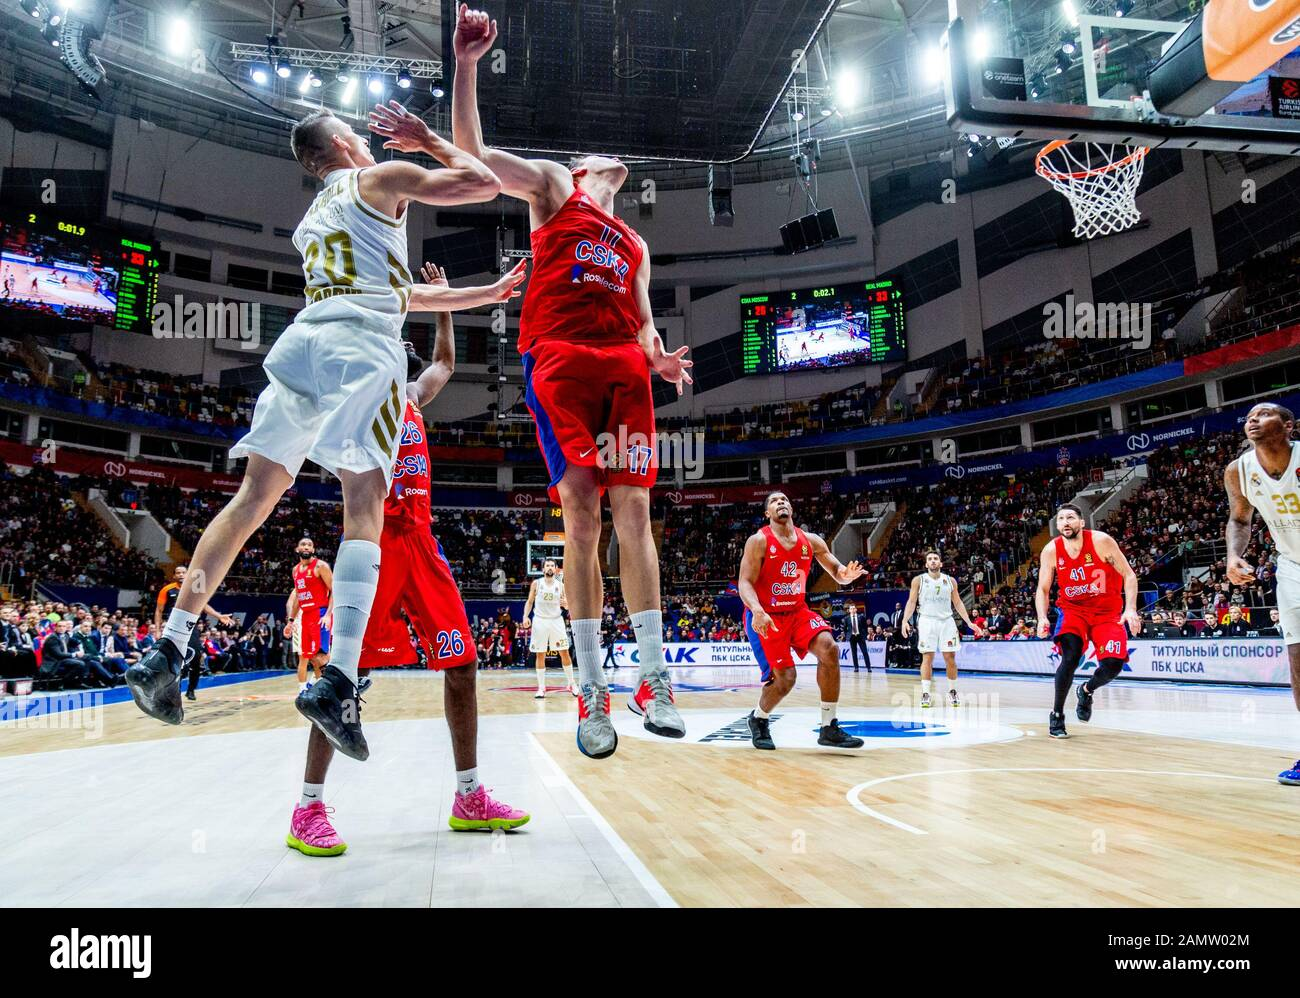 Moskau, Russland. Januar 2020. #20 Jaycee Carroll von Real Madrid im Einsatz gegen CSKA Moskau während der regulären Saison 2019/2020 Turkish Airlines Euroleague Runde 19 in der Megasport Arena.(Endstand: CSKA Moskau 60 - 55 Real Madrid) Credit: Sopa Images Limited/Alamy Live News Stockfoto